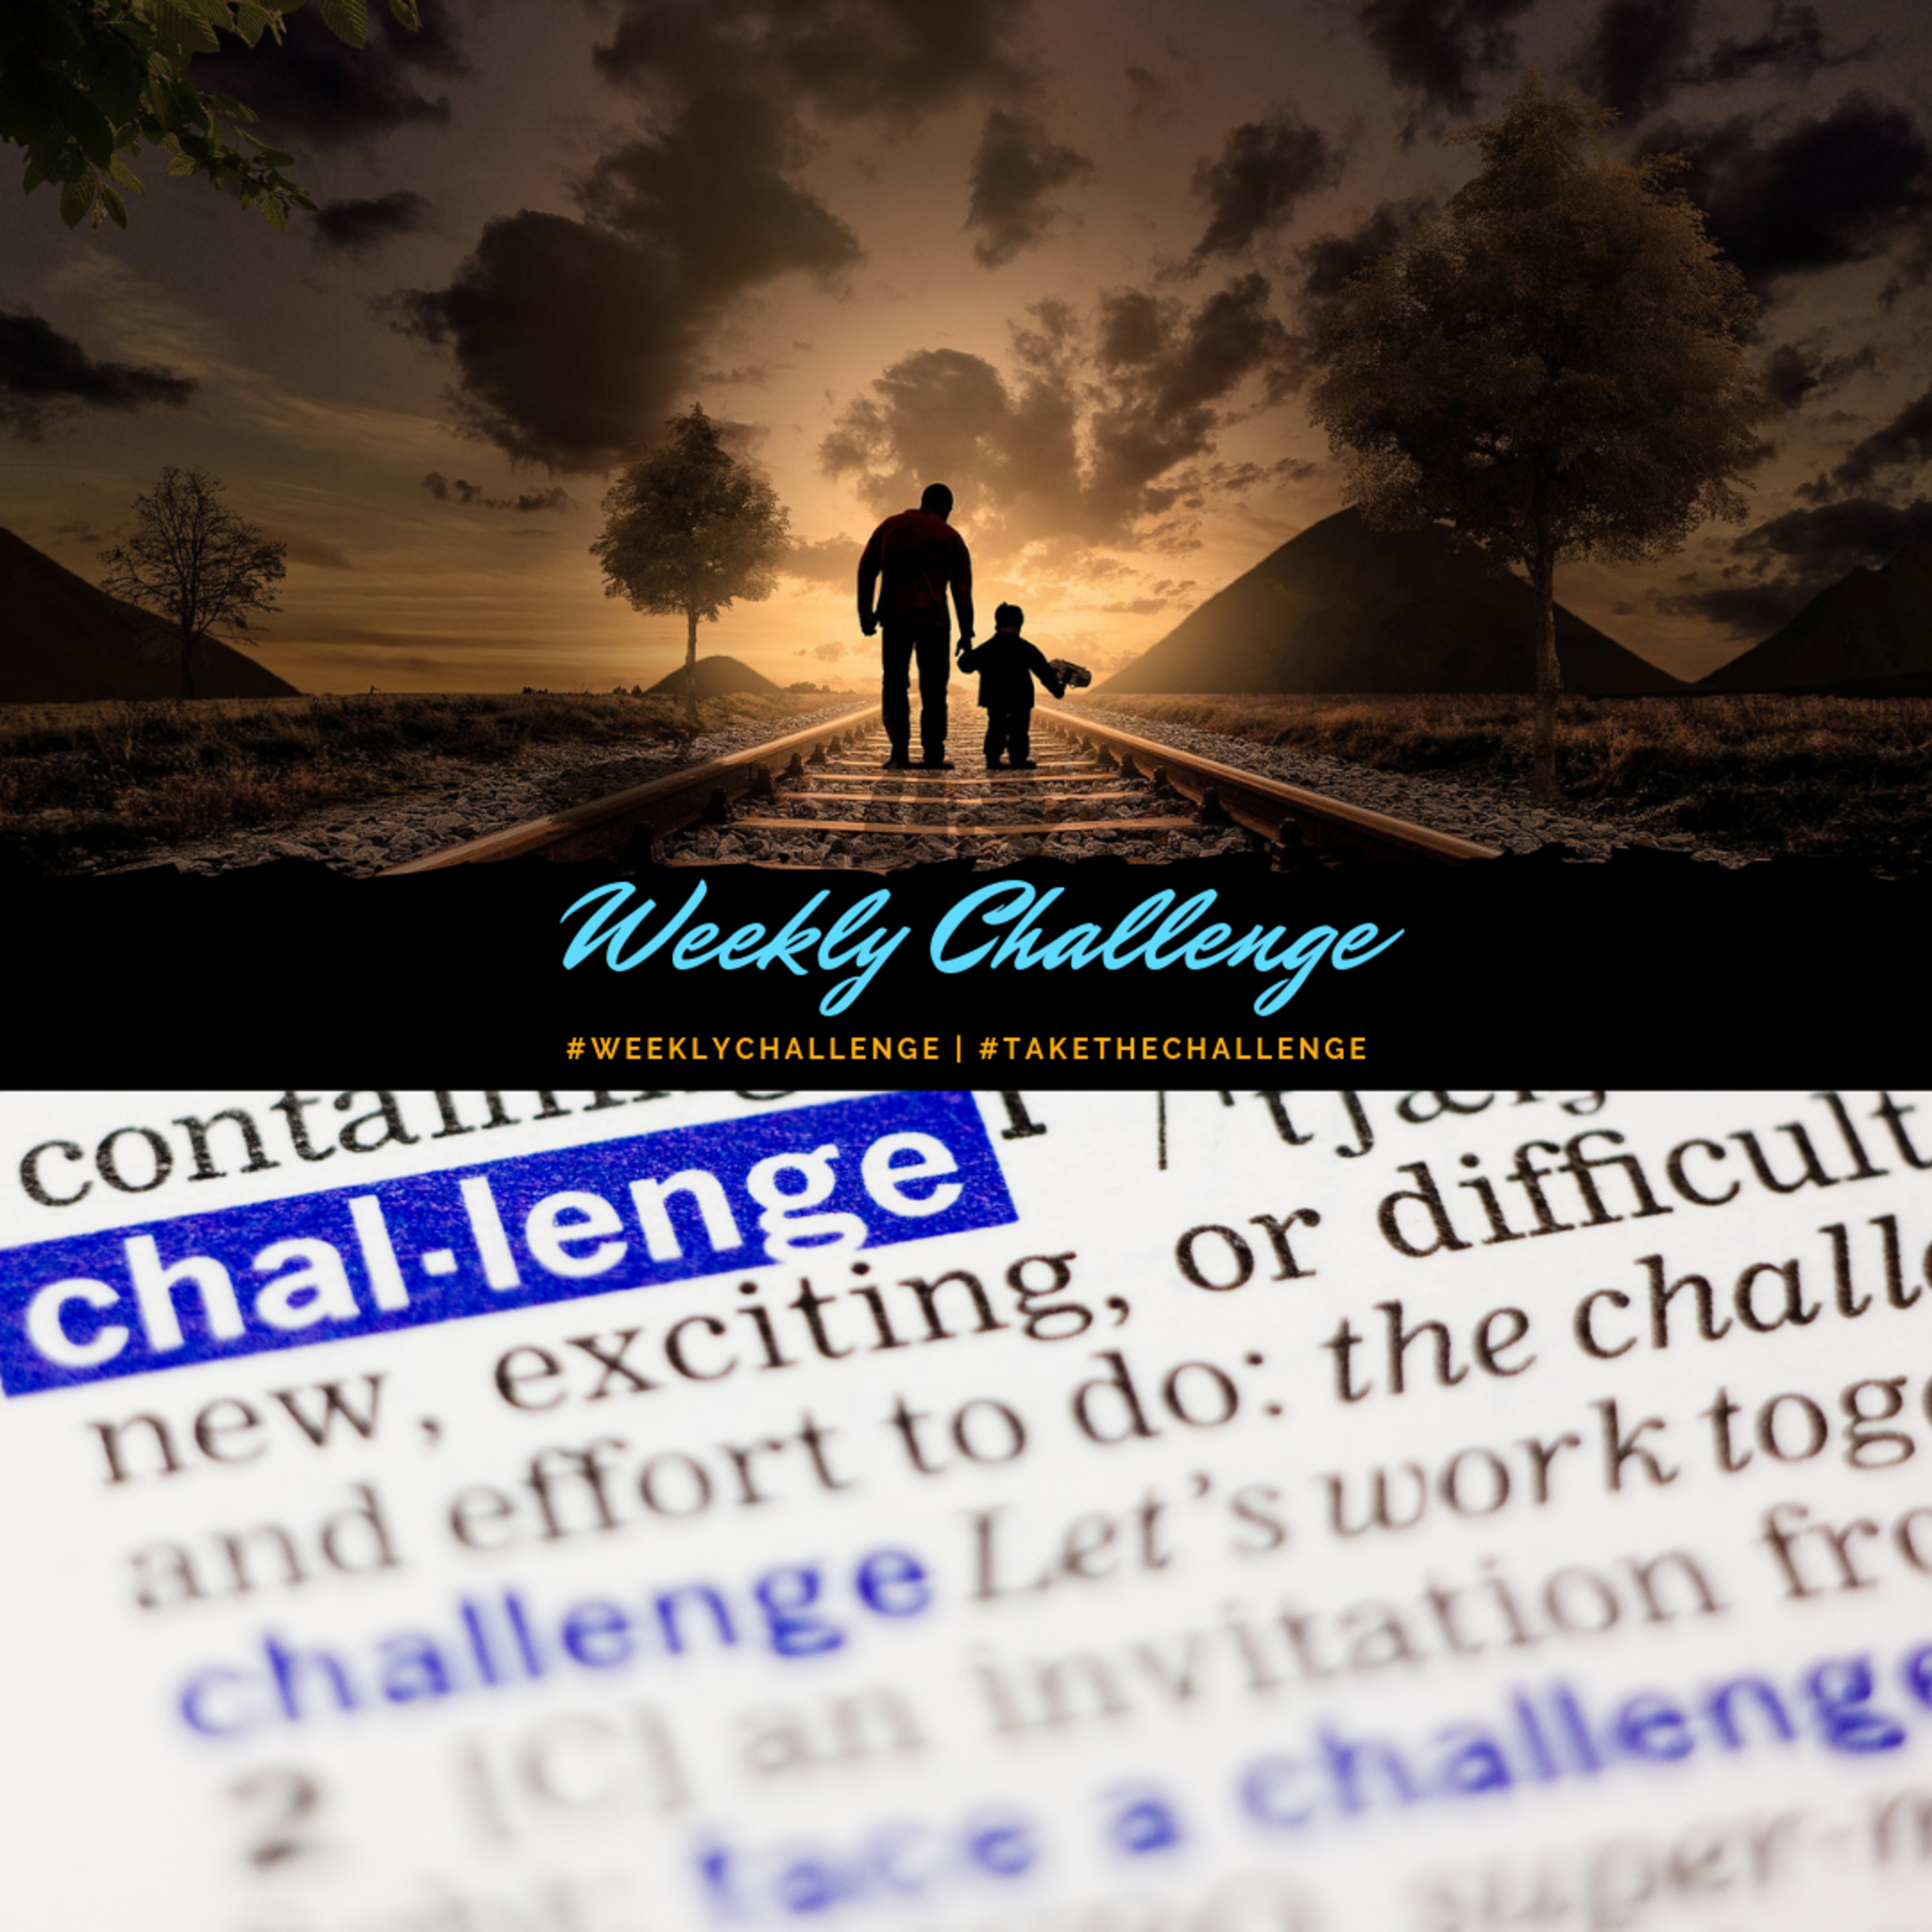 #WeeklyChallenge | From Ep 51 With Dr. Kelly Duffy